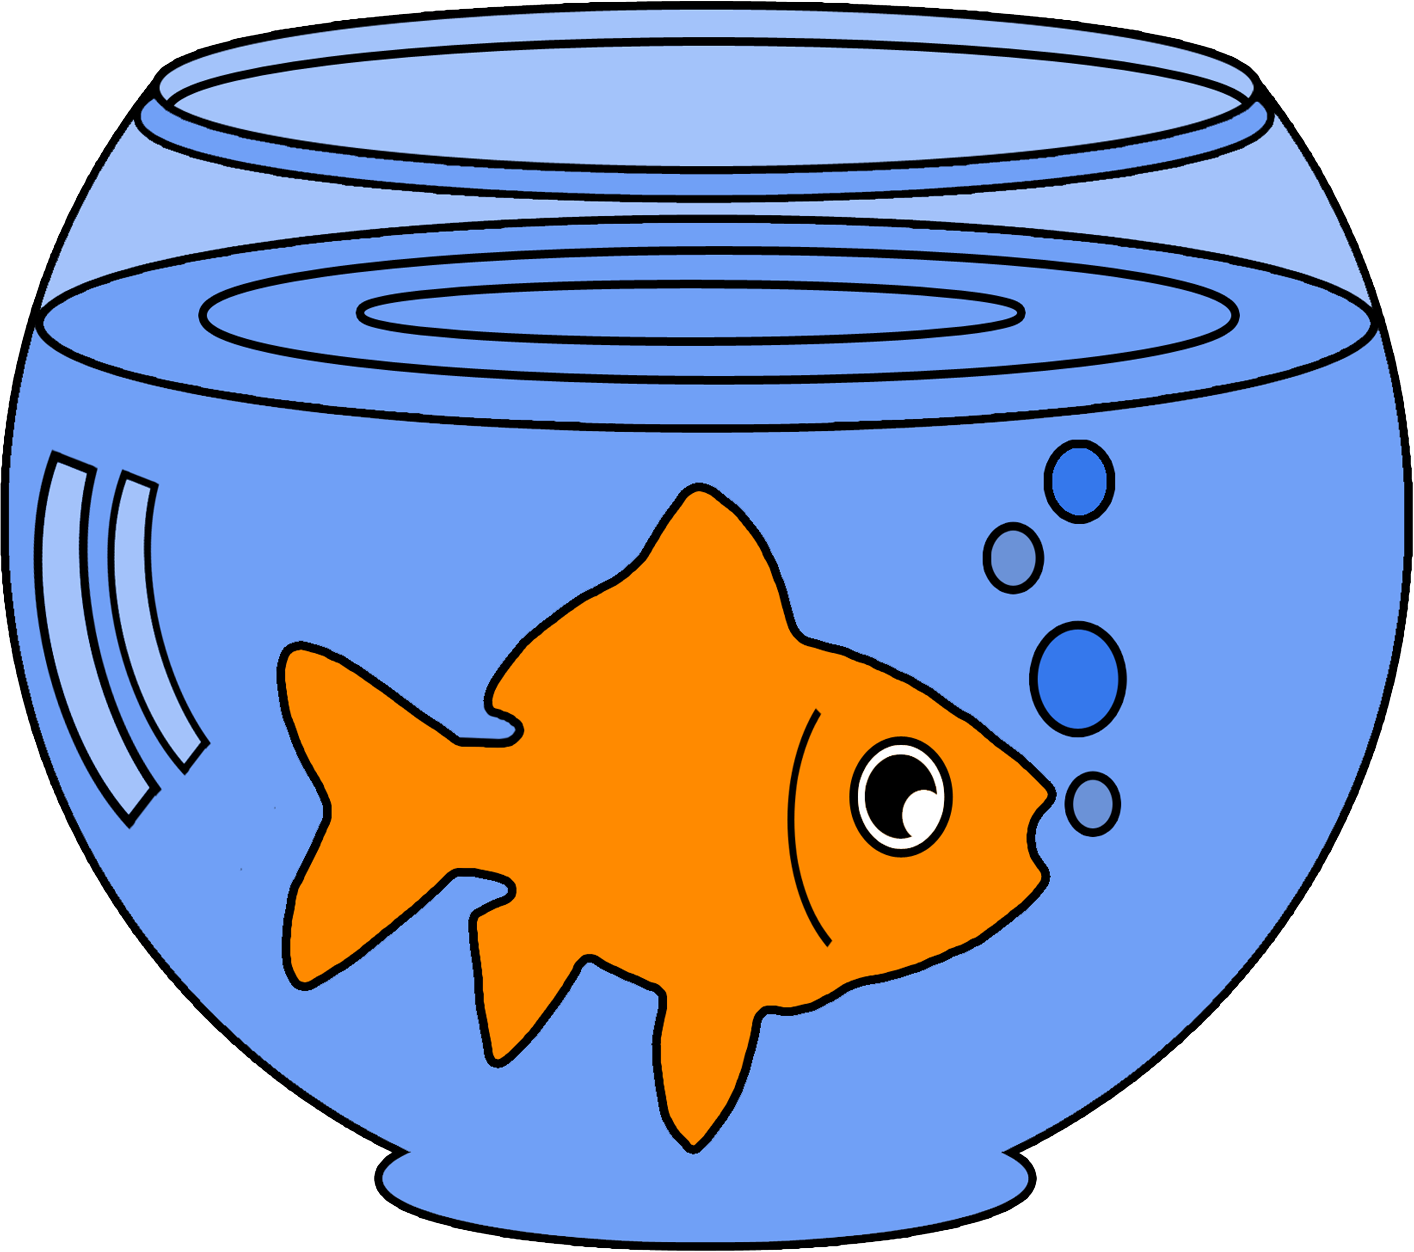 Fish clipart in a bowl graphic download Read Goldfish Bowl Care Online Free | YUDU graphic download